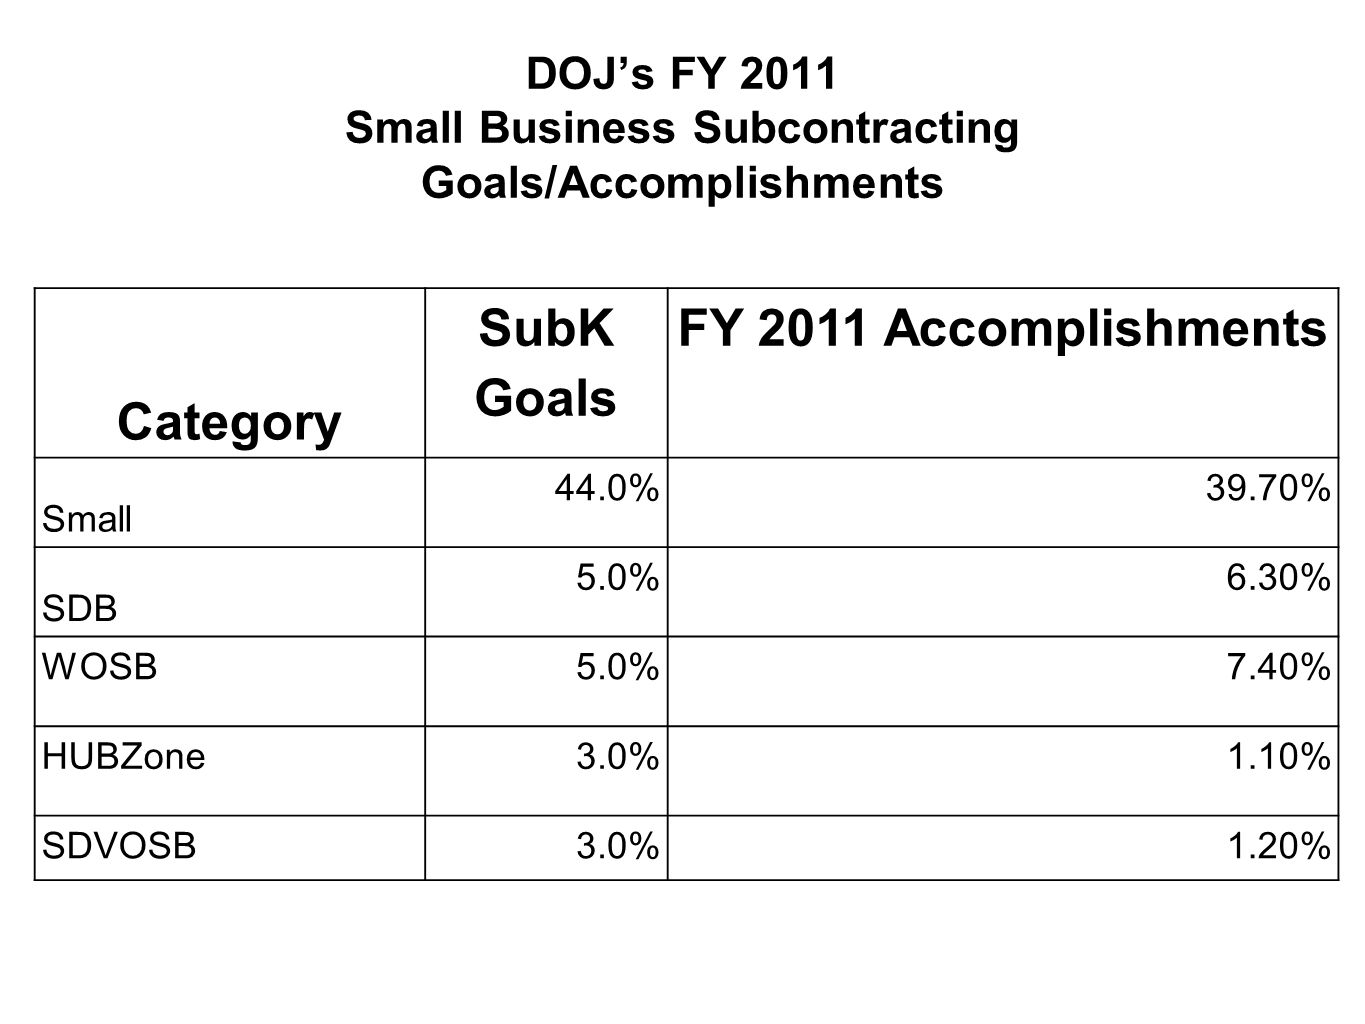 DOJ's FY 2011 Small Business Subcontracting Goals/Accomplishments Category SubK Goals FY 2011 Accomplishments Small 44.0%39.70% SDB 5.0%6.30% WOSB 5.0%7.40% HUBZone 3.0%1.10% SDVOSB3.0%1.20%